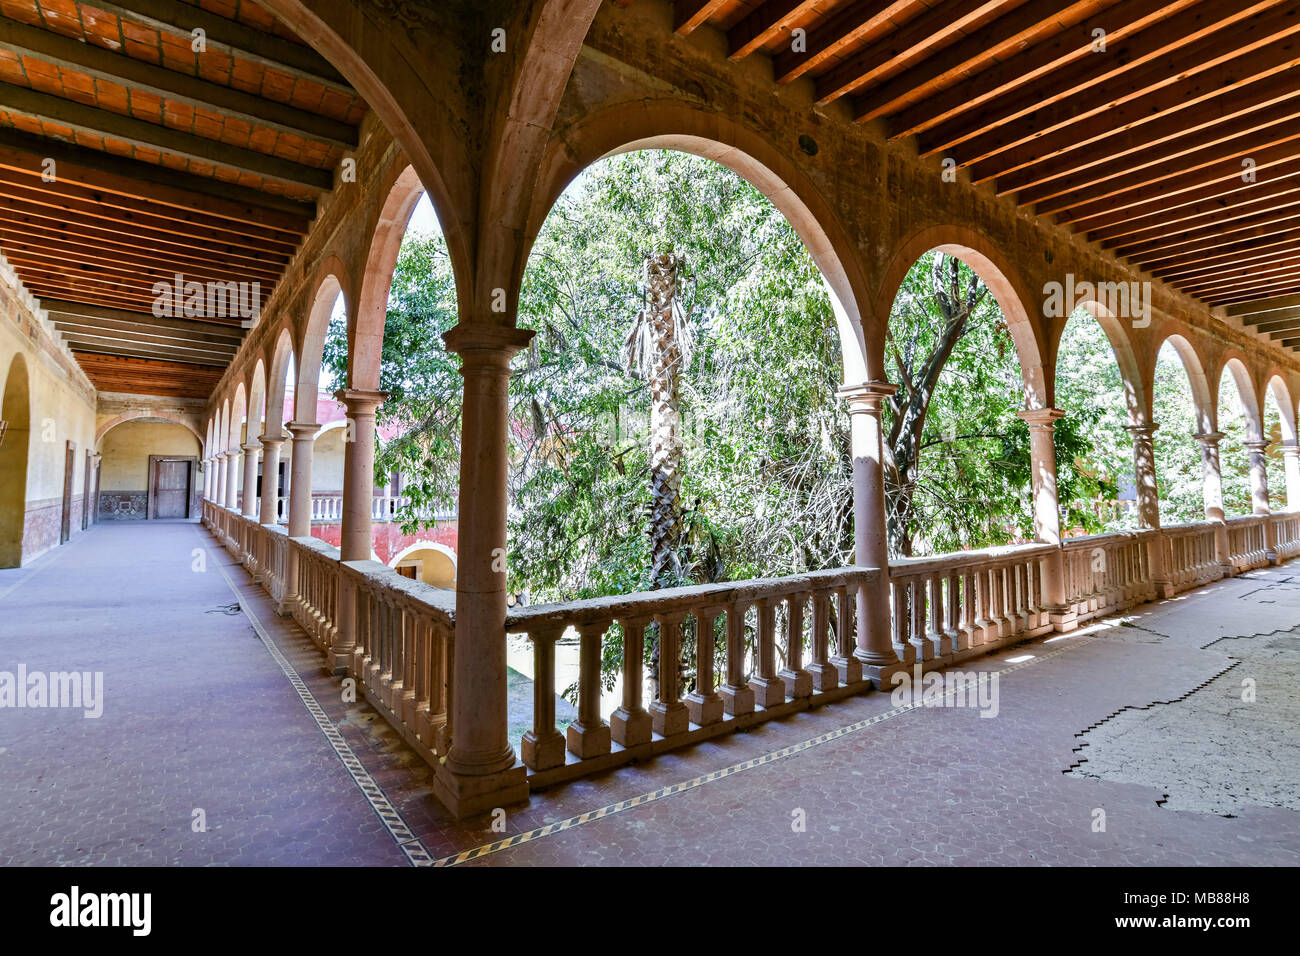 View of the derelict and fading Hacienda de Jaral de Berrio in Jaral de Berrios, Guanajuato, Mexico. The abandoned Jaral de Berrio hacienda was once the largest in Mexico and housed over 6,000 people on the property and is credited with creating Mescal. - Stock Image